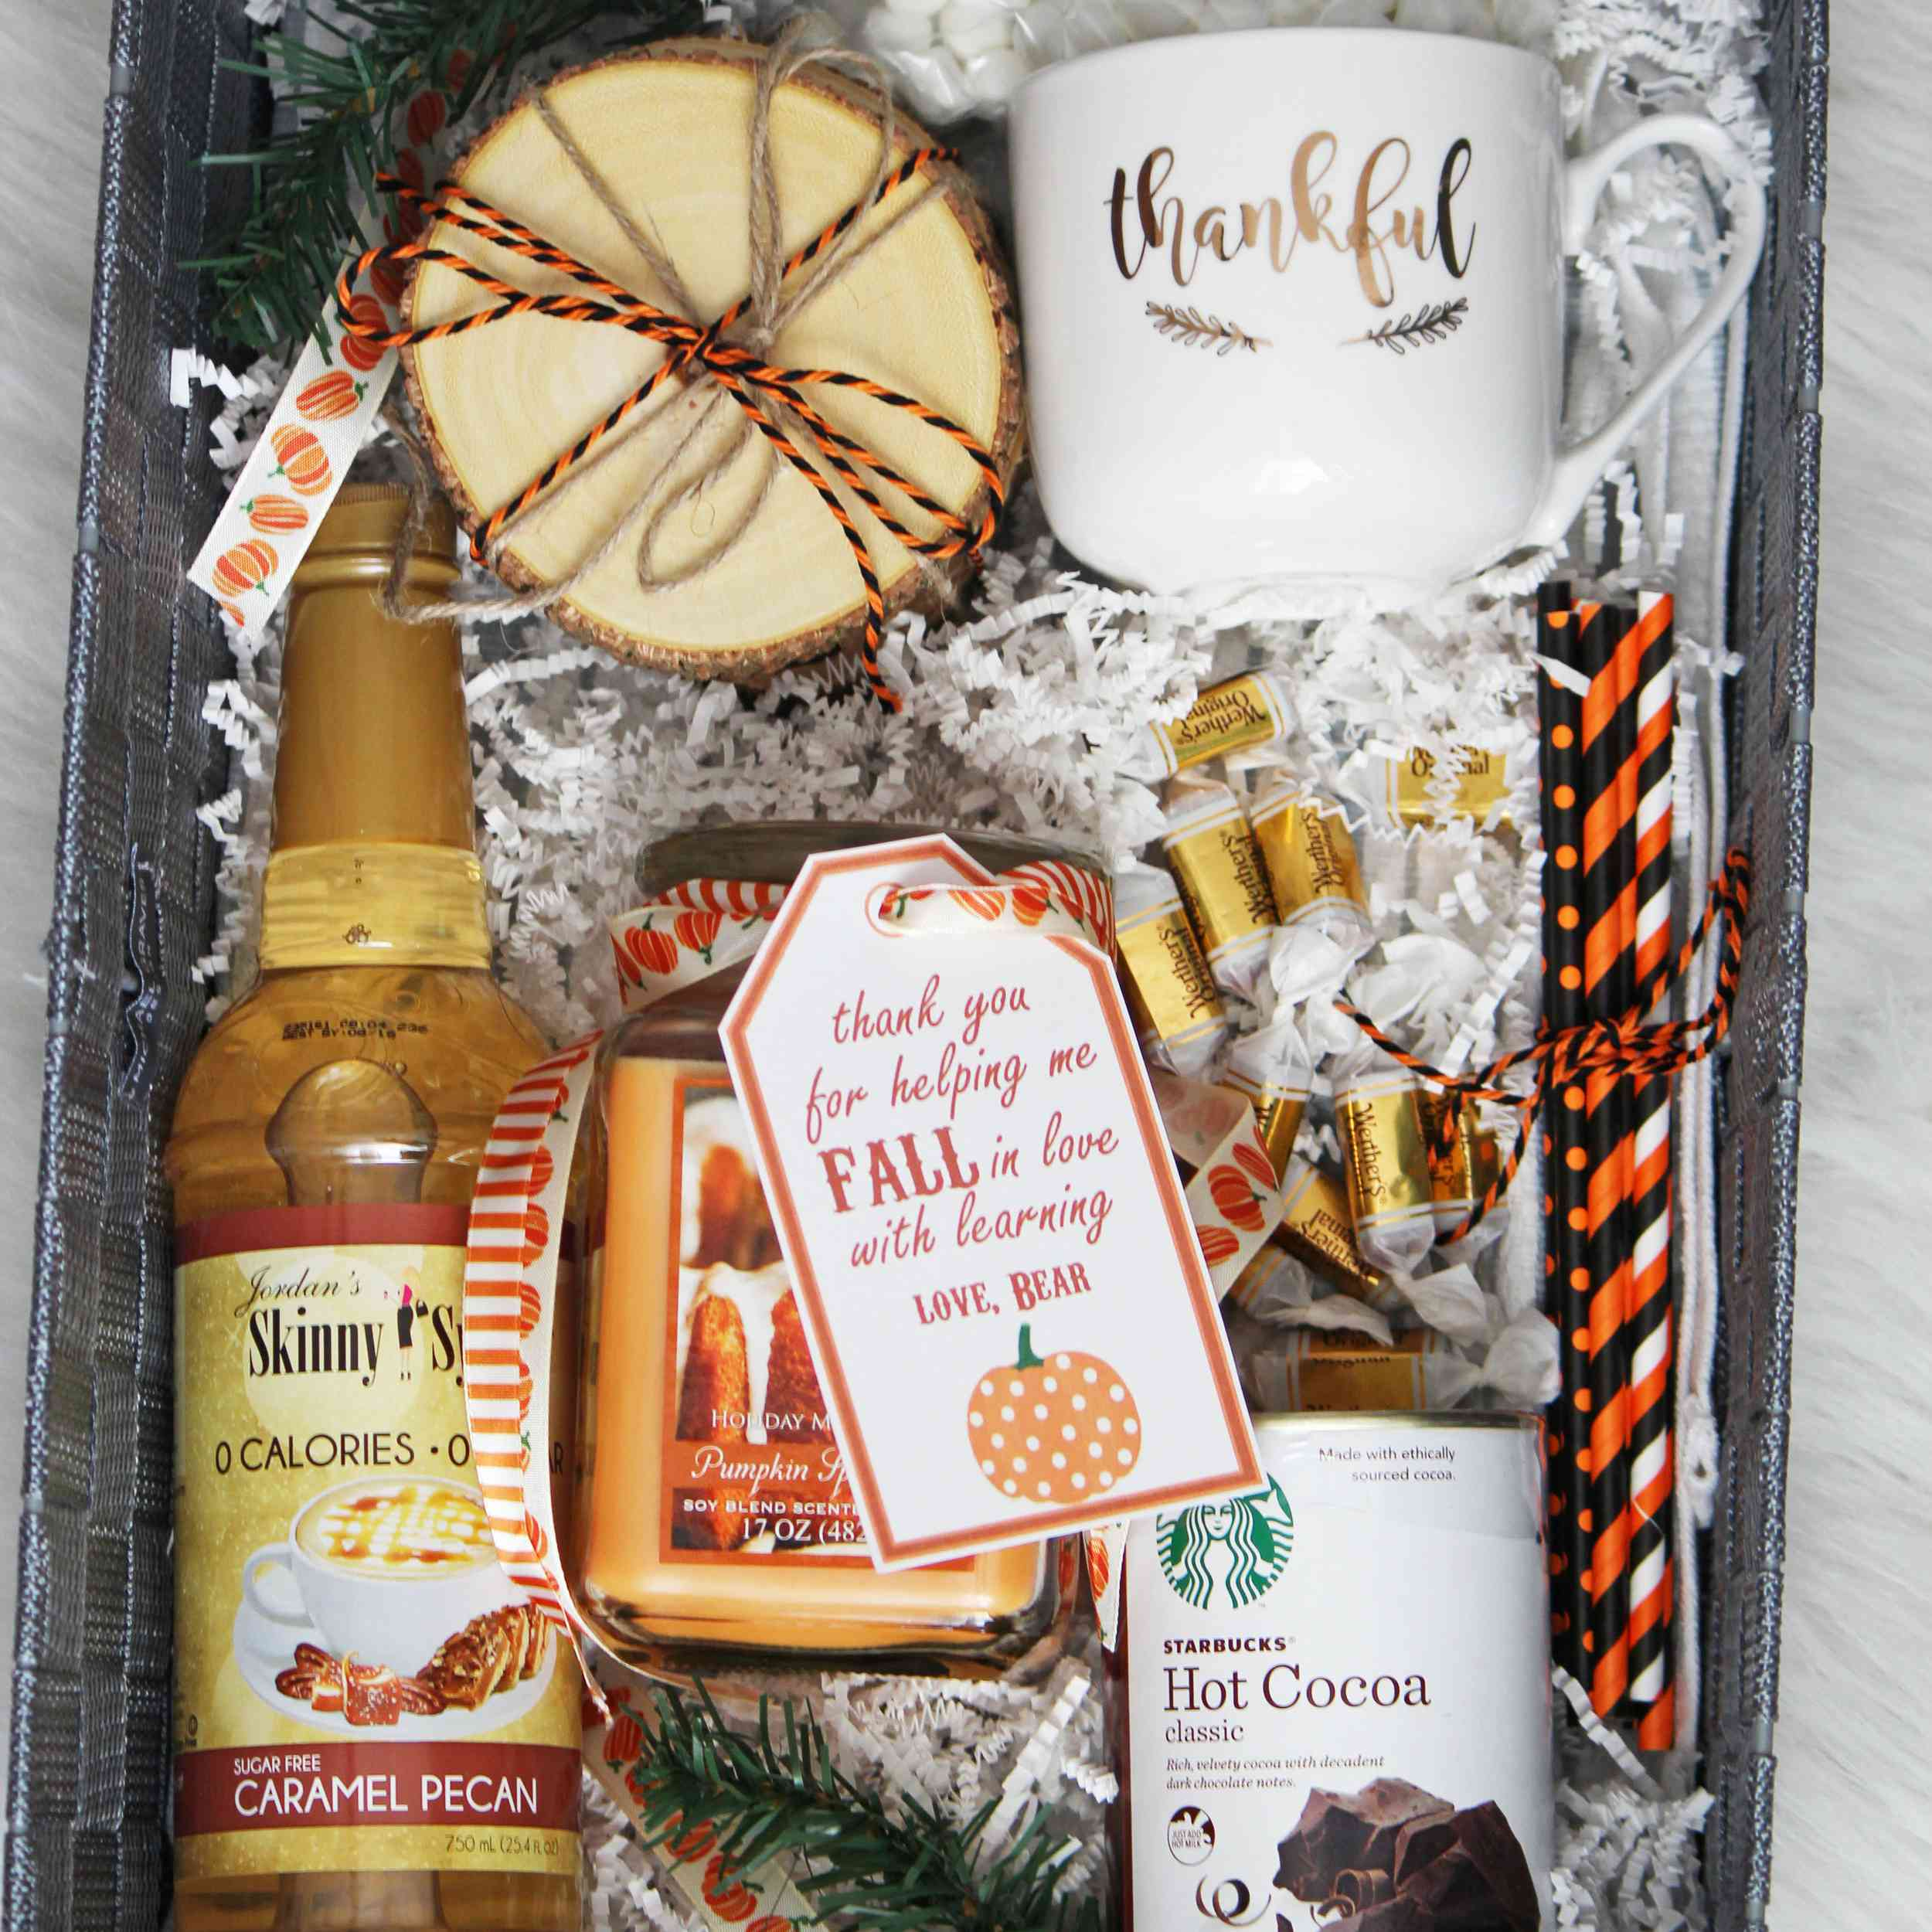 Fall-themed gift basket with cocoa and a cute mug.